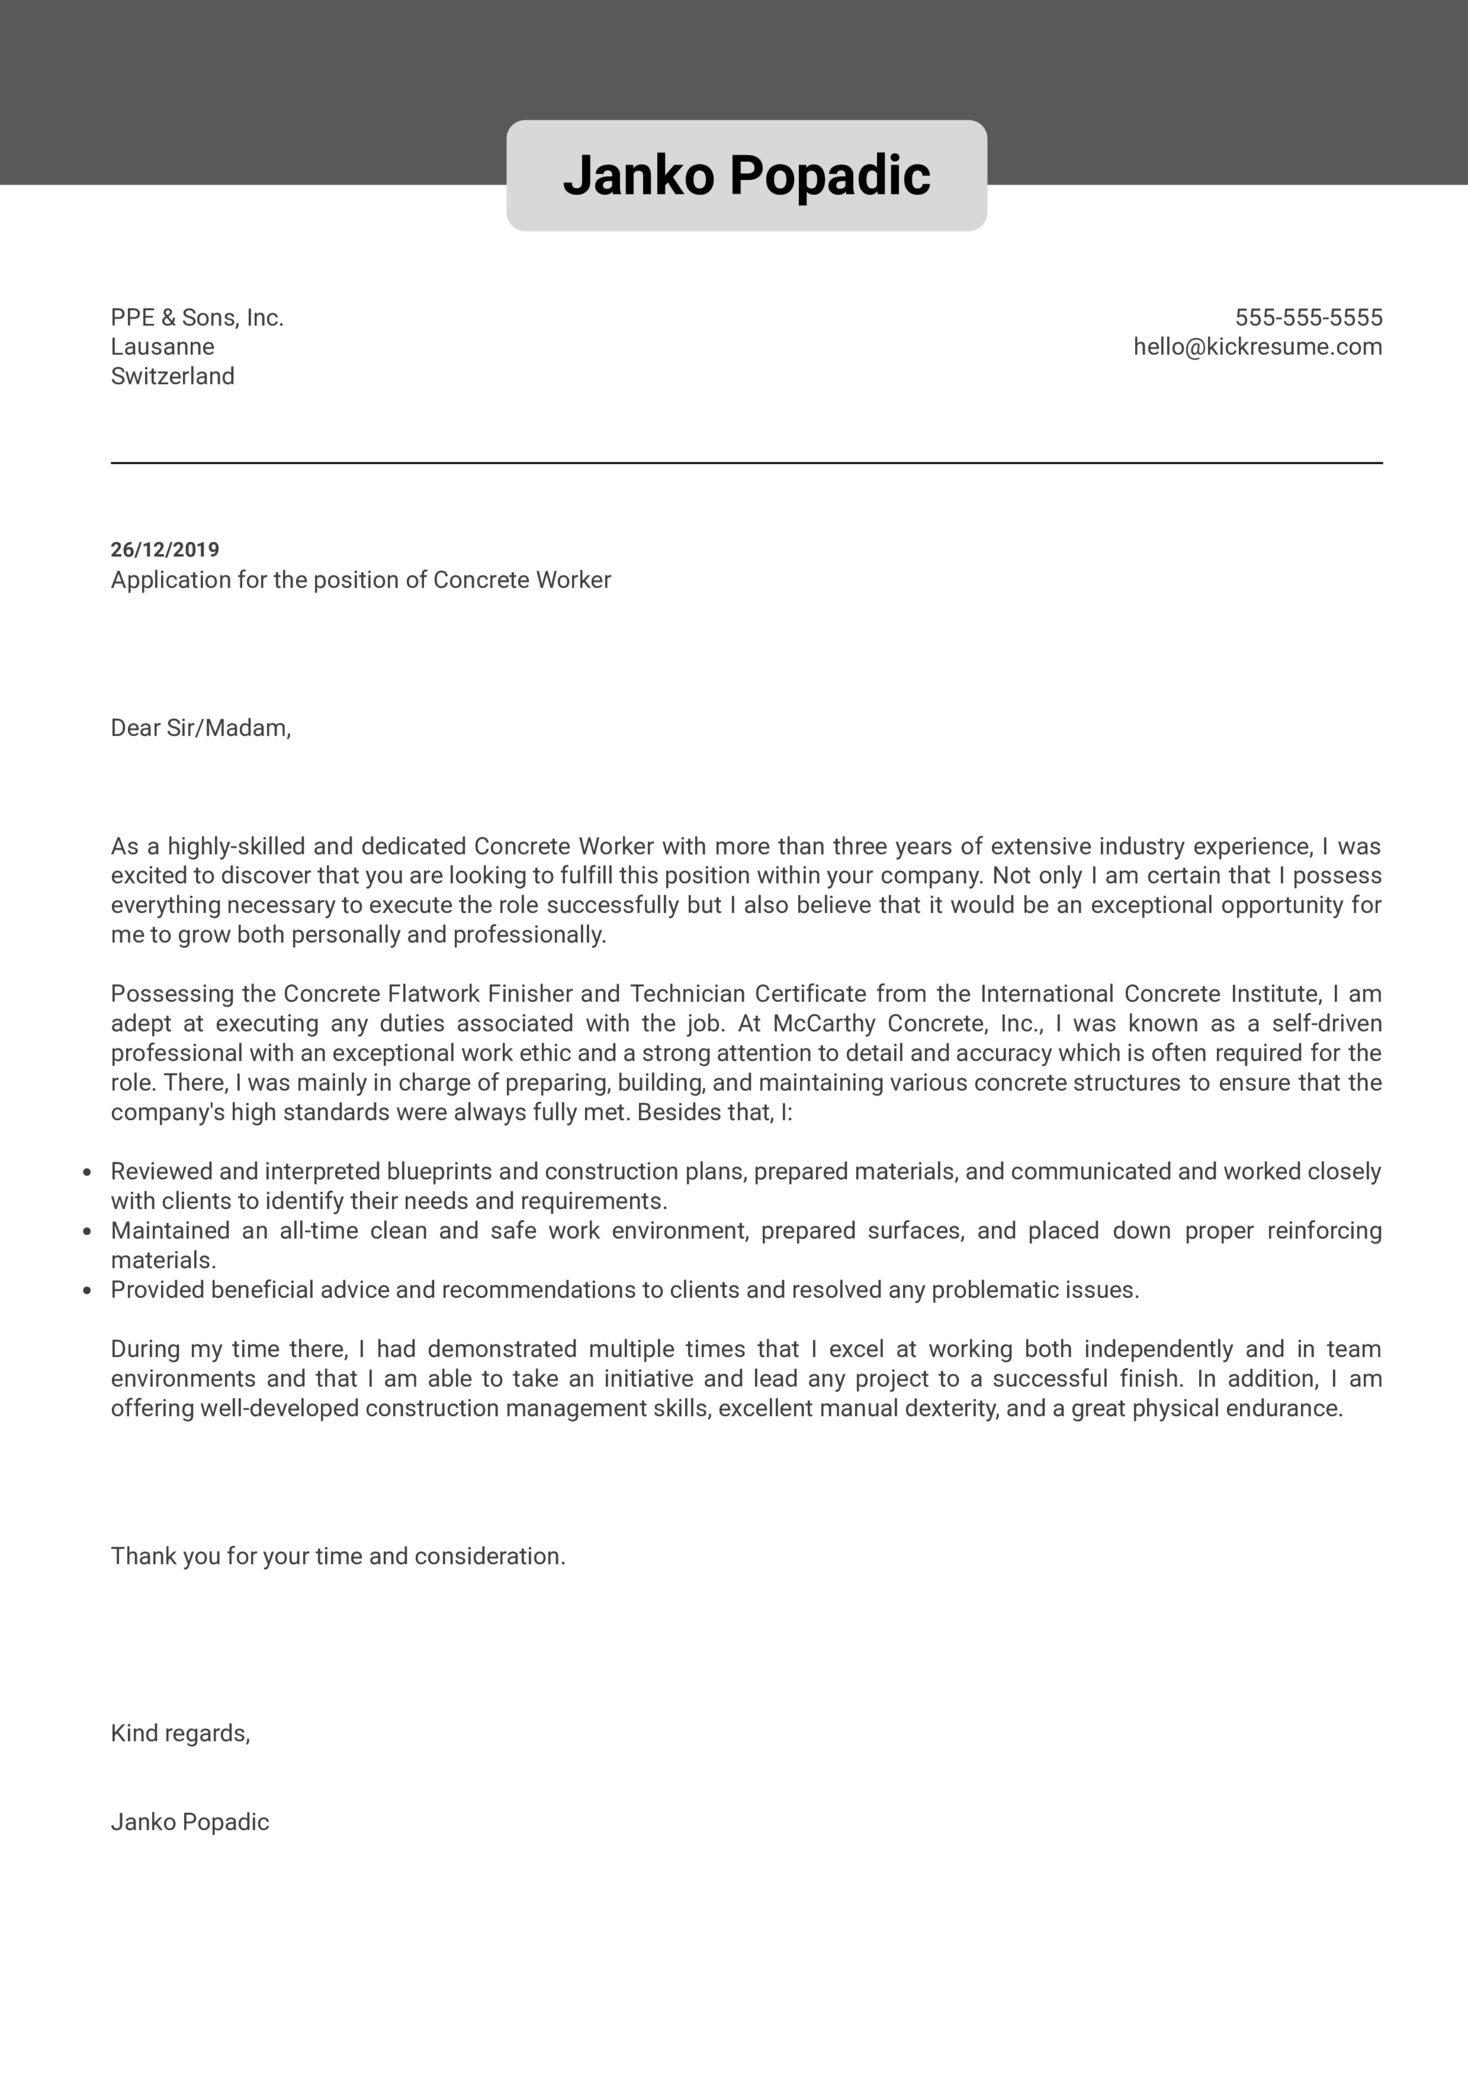 Concrete Worker Cover Letter Sample